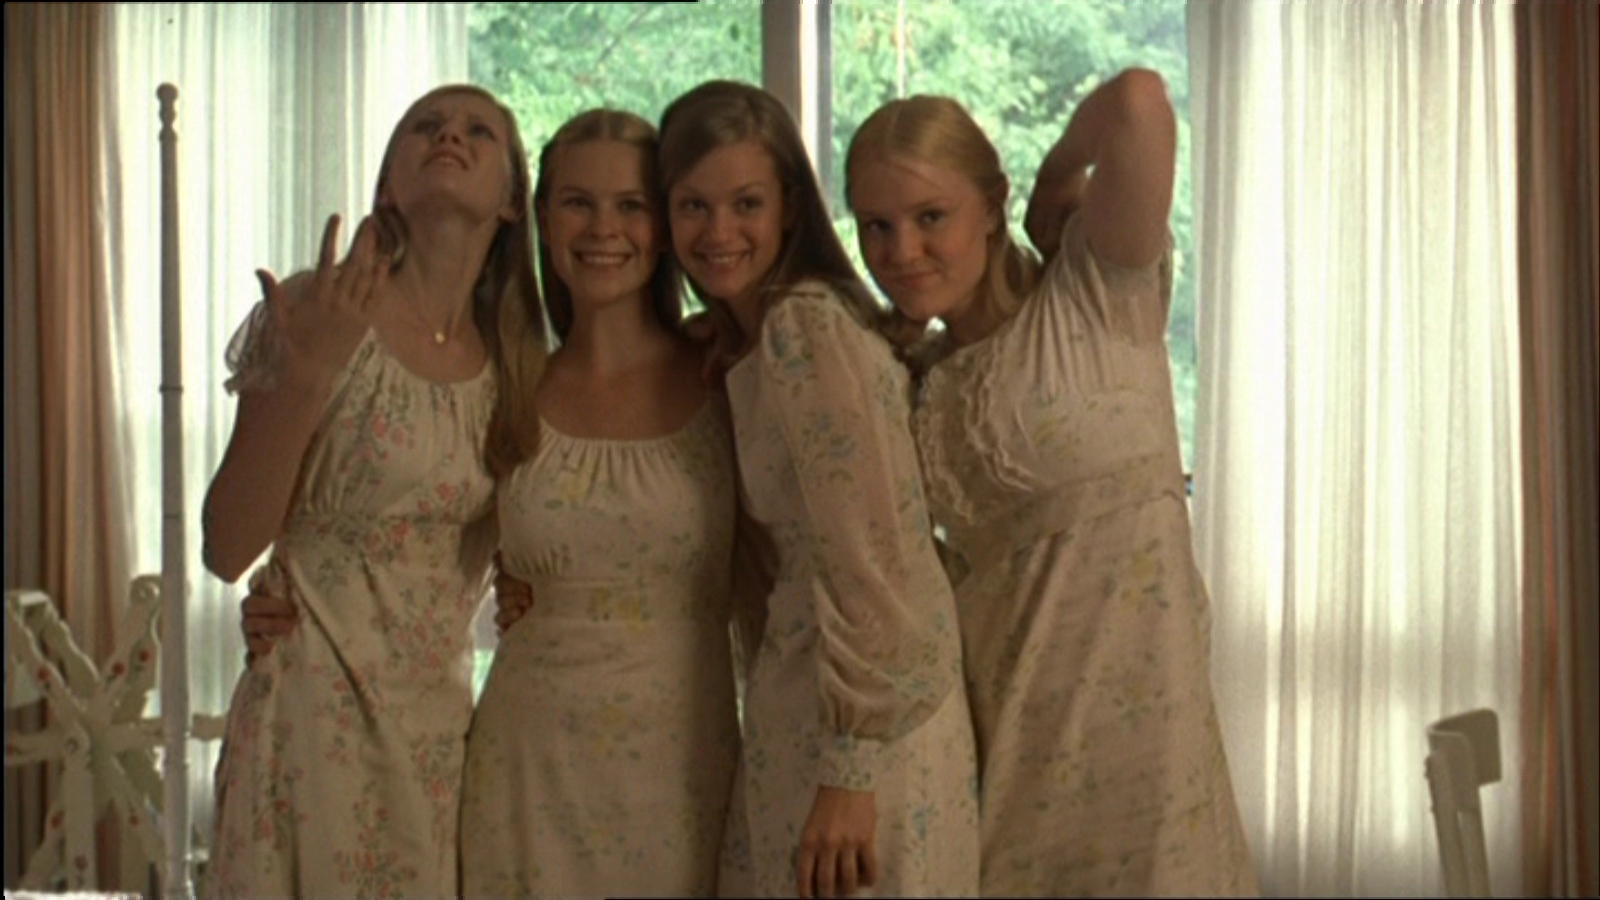 the coming of age a review of sofia coppolas the virgin suicides essay Film analysis: sofia coppola's the bling ring it will be more of an ideological essay in the virgin suicides.